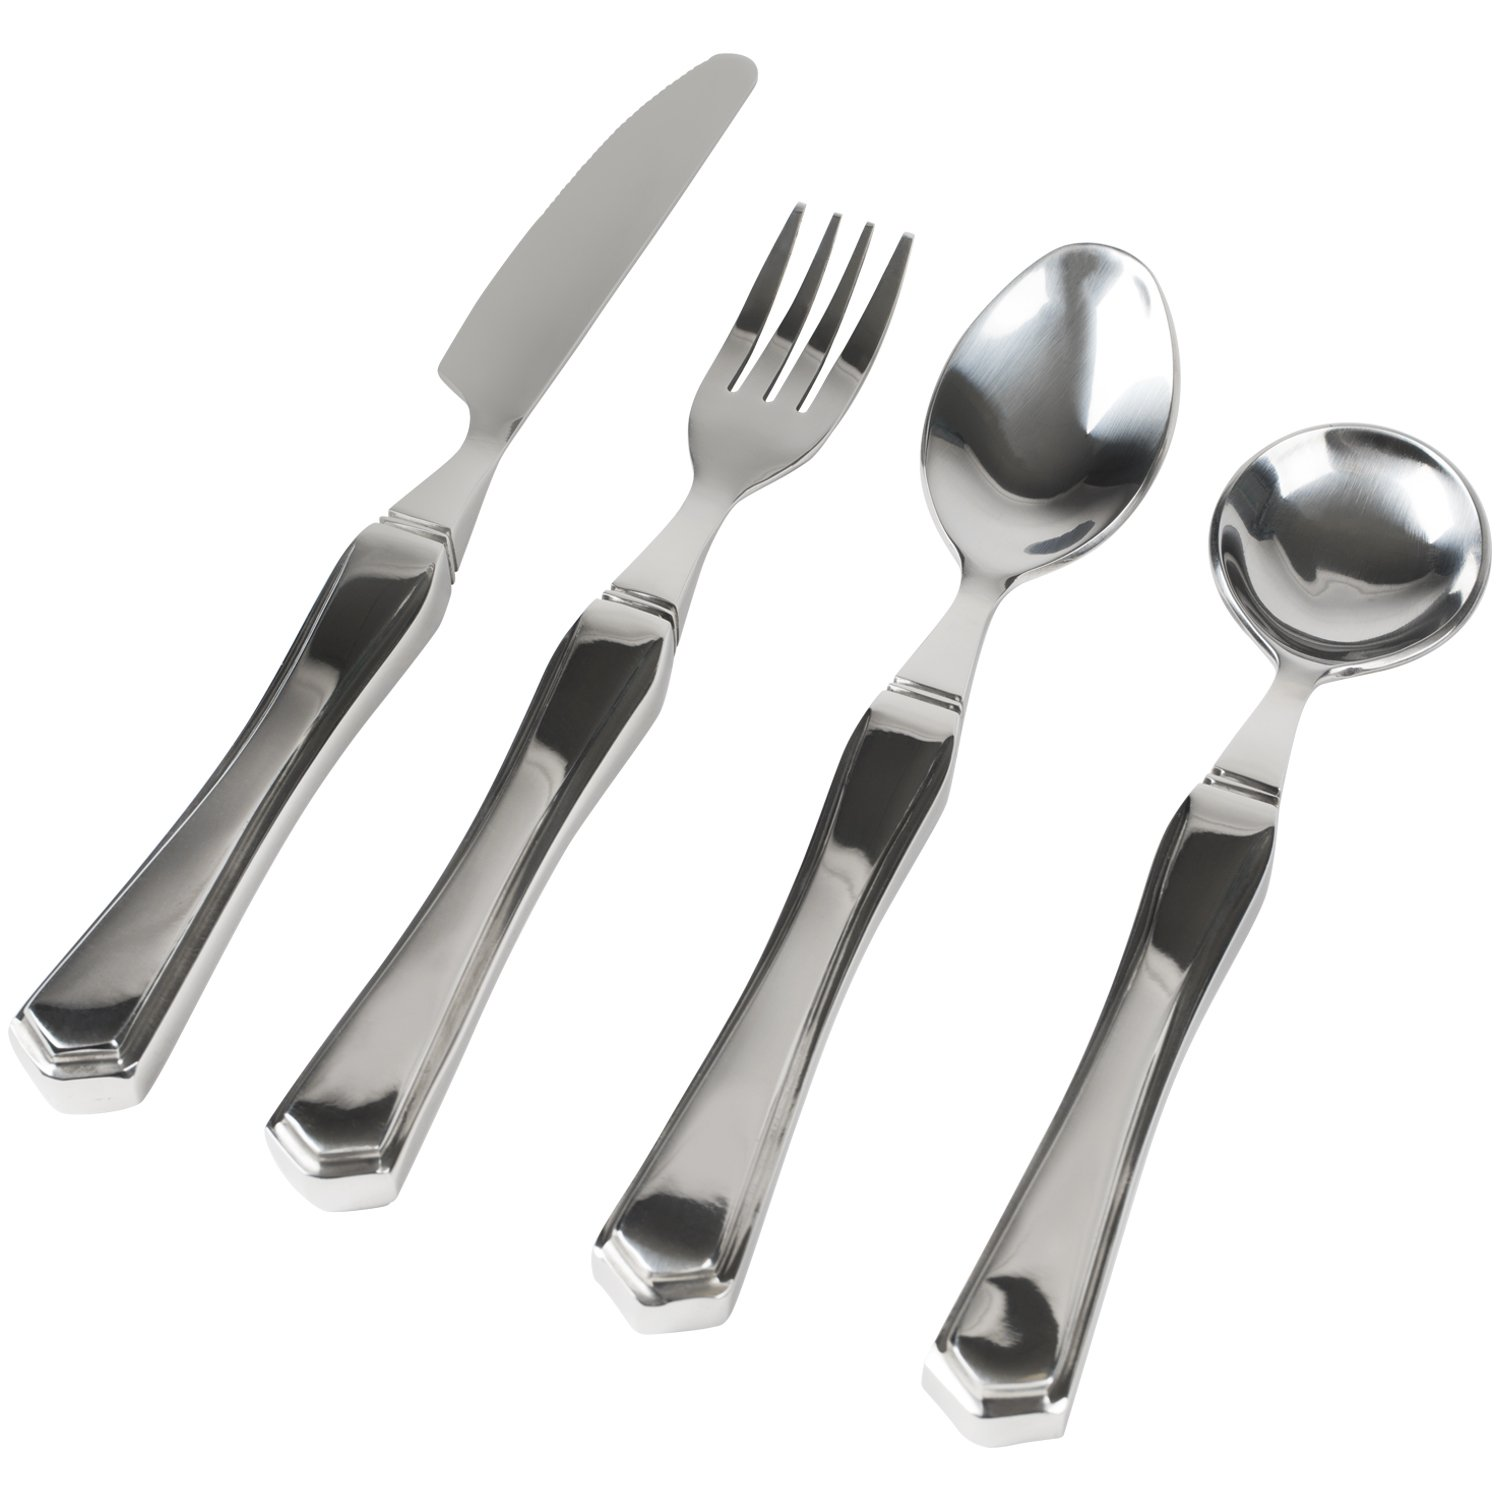 Vive Weighted Utensils - Heavy Weight Stainless Steel Eating Silverware Set fo Parkinsons Hand Tremors, Adults, Kids, Elderly Patients, Pediatrics, Children - Knife, Fork, Spoons Holder (4 Piece)